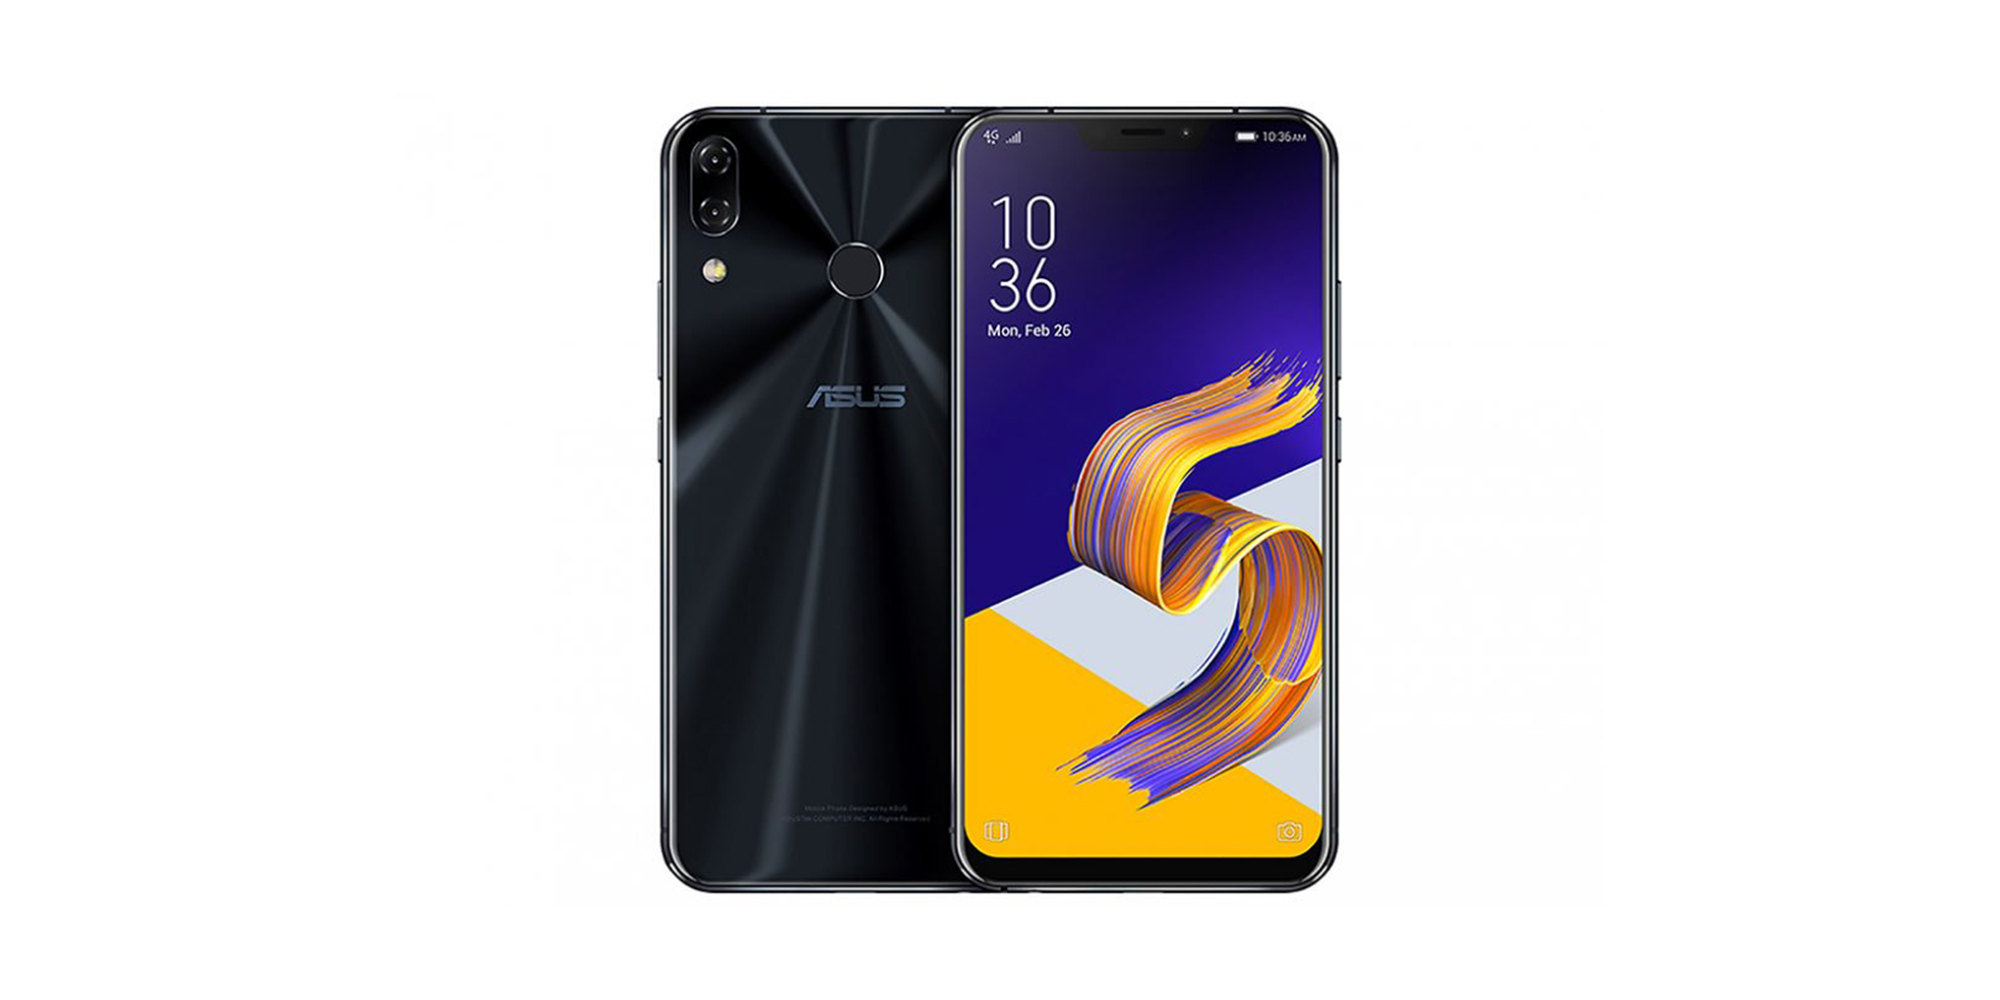 Asus zenfone 5 family brings bezel less design snapdragon 845 and the downside at least for the zenfone 5 lite and 5 is that they will charge over microusb ccuart Gallery